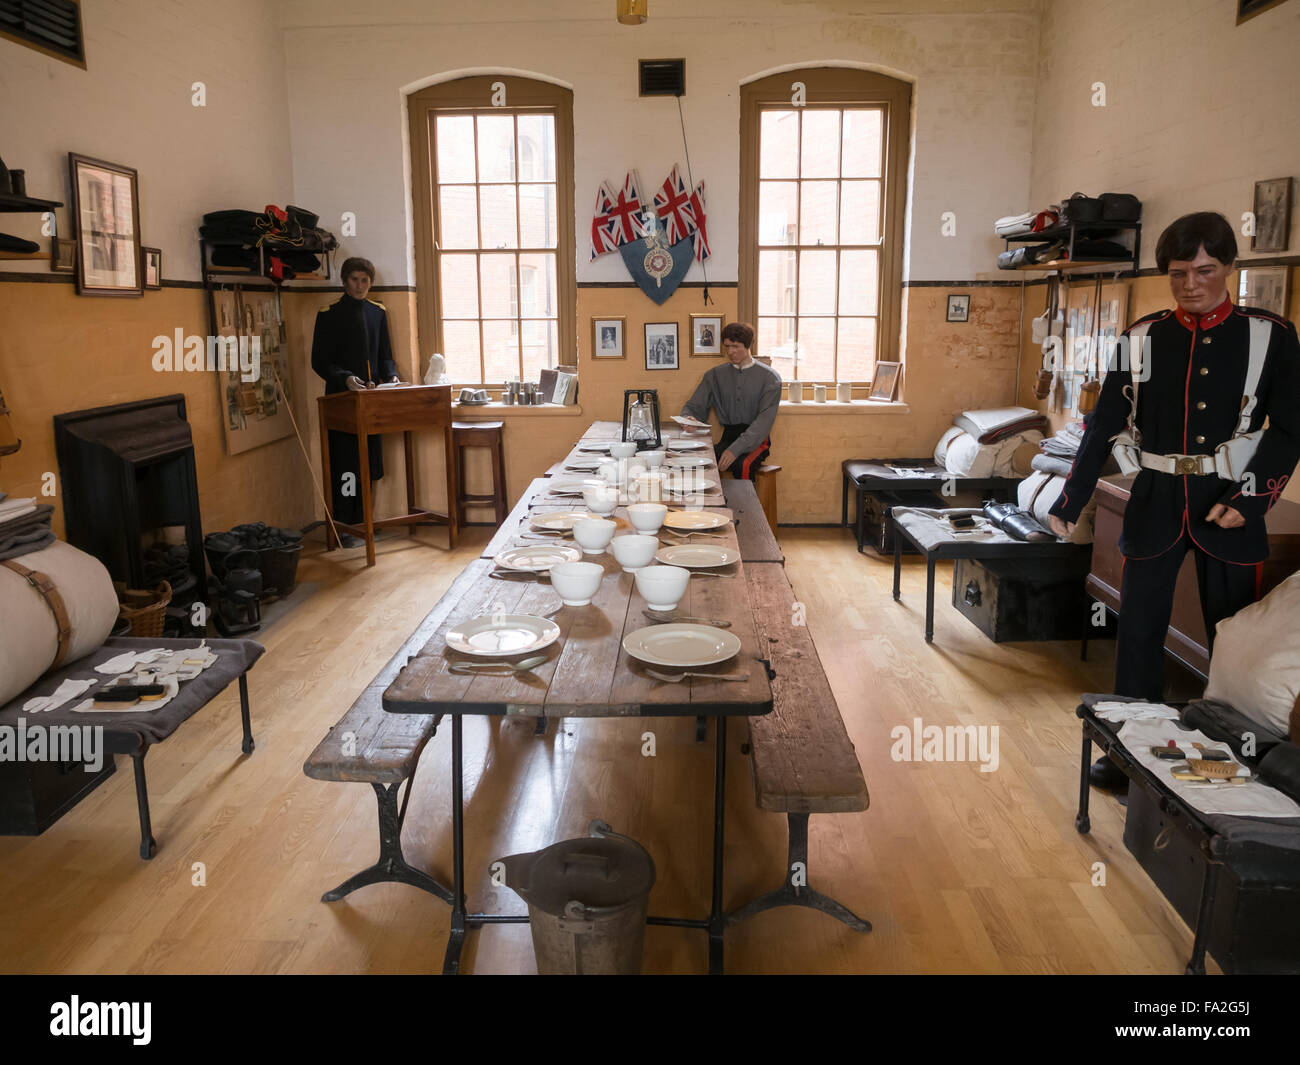 The Officers Mess inside Fort Nelson Royal Armouries museum, Portsmouth, England - Stock Image